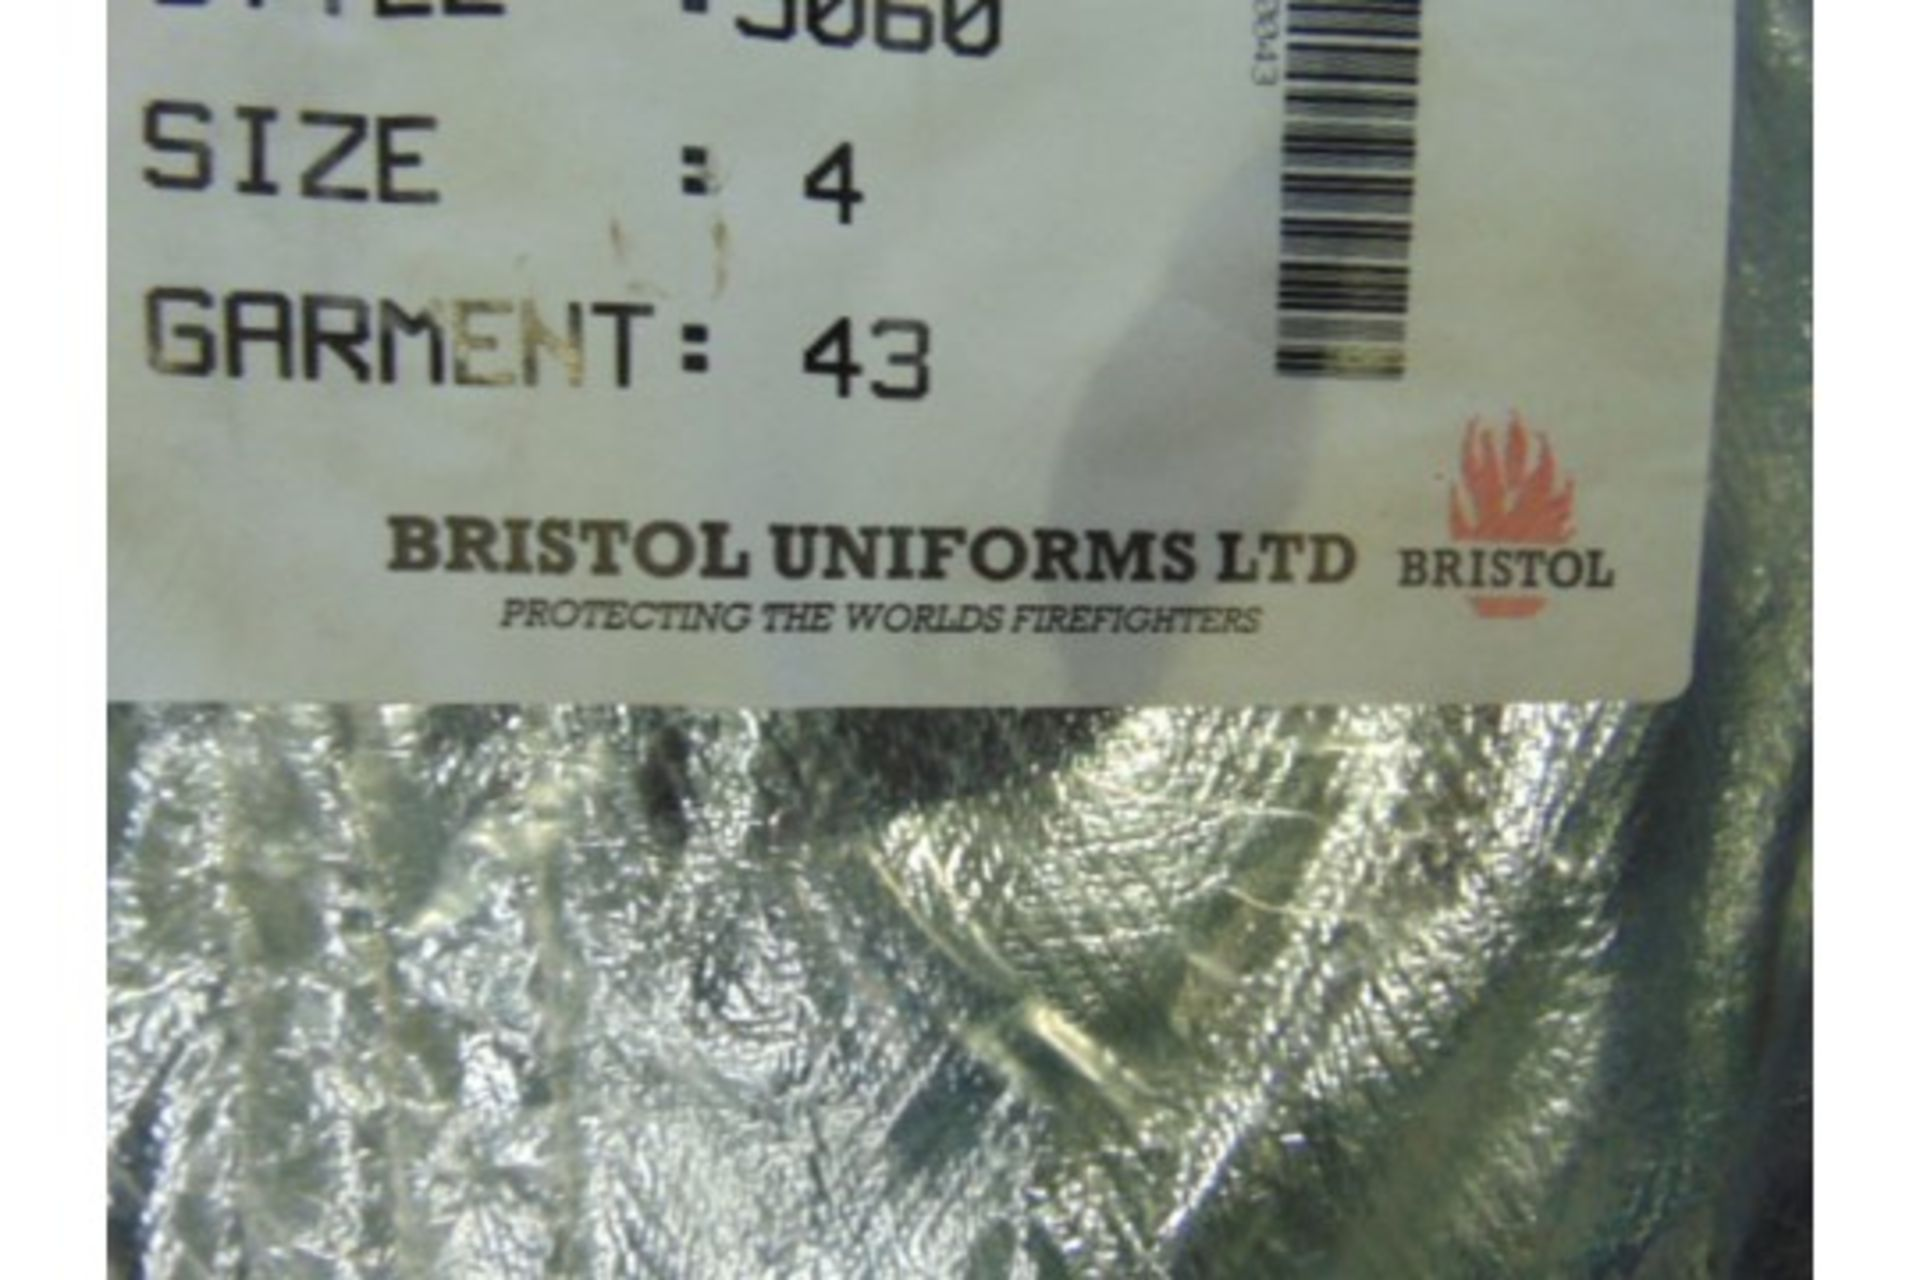 Lot 55 - 11 x Unissued Heat Protective Safety Coverall